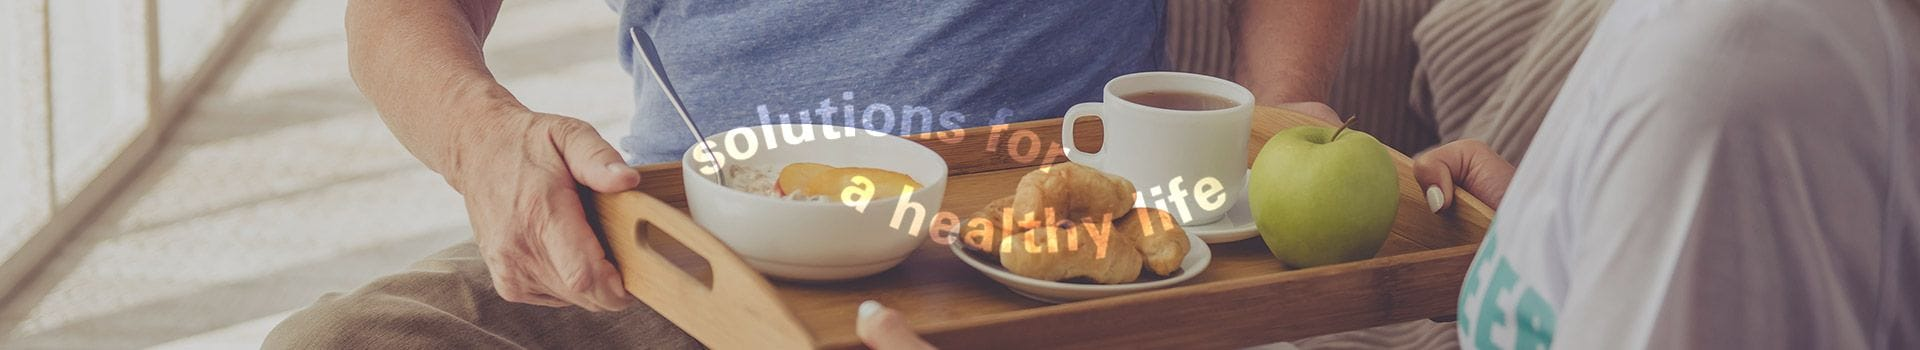 Nutrition Professionals Australia, solutions for a healthy life